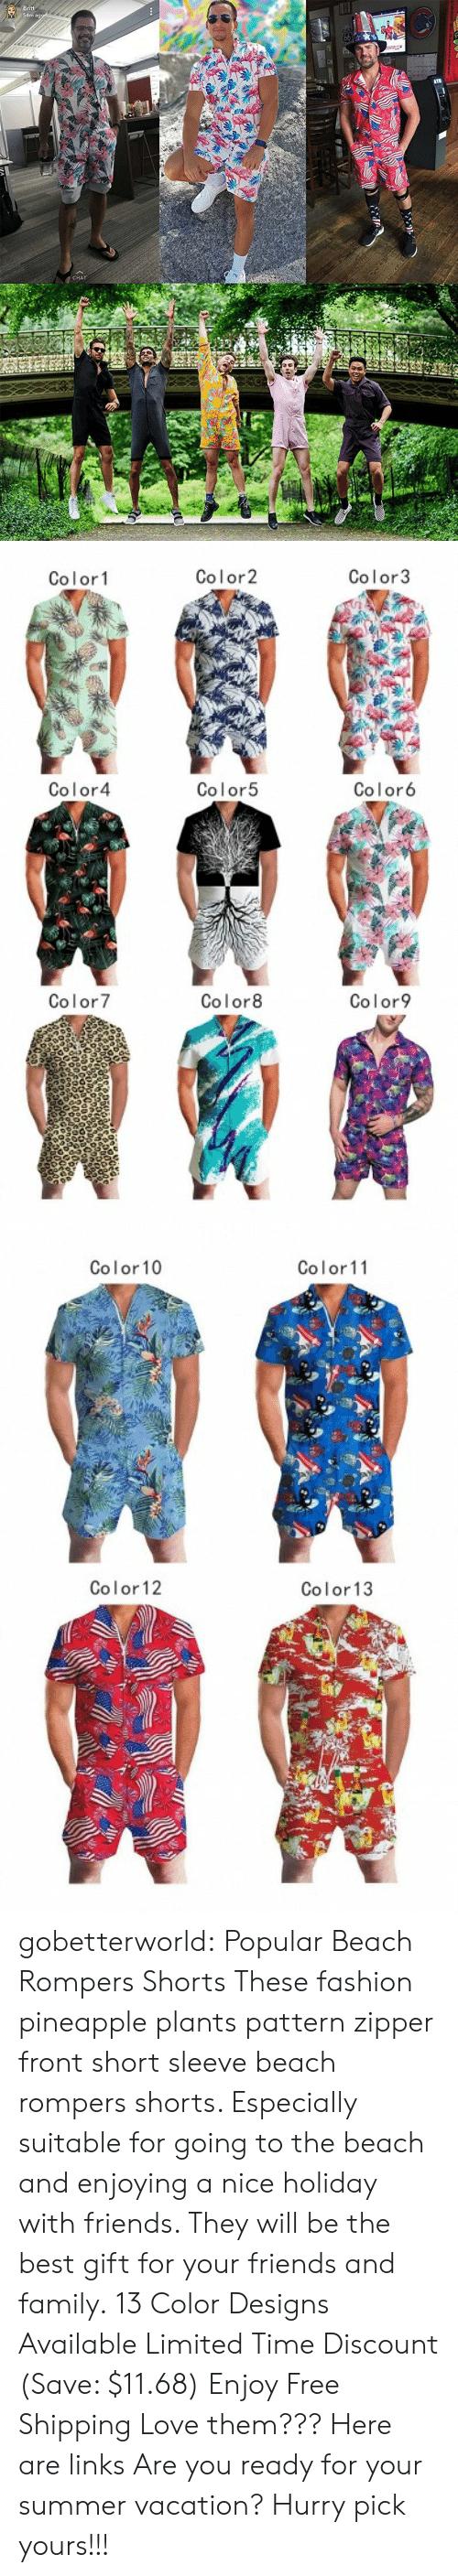 Family, Fashion, and Friends: Britt  54m ago  66  ...   Color2  Color3  Color1  Color4  Color5  Color6  Color8  Color7  Color9   Color10  Color11  Color 12  Color13 gobetterworld: Popular Beach Rompers Shorts These fashion pineapple plants pattern zipper front short sleeve beach rompers shorts. Especially suitable for going to the beach and enjoying a nice holiday with friends. They will be the best gift for your friends and family.  13 Color Designs Available Limited Time Discount (Save: $11.68) Enjoy Free Shipping   Love them??? Here are links   Are you ready for your summer vacation? Hurry pick yours!!!